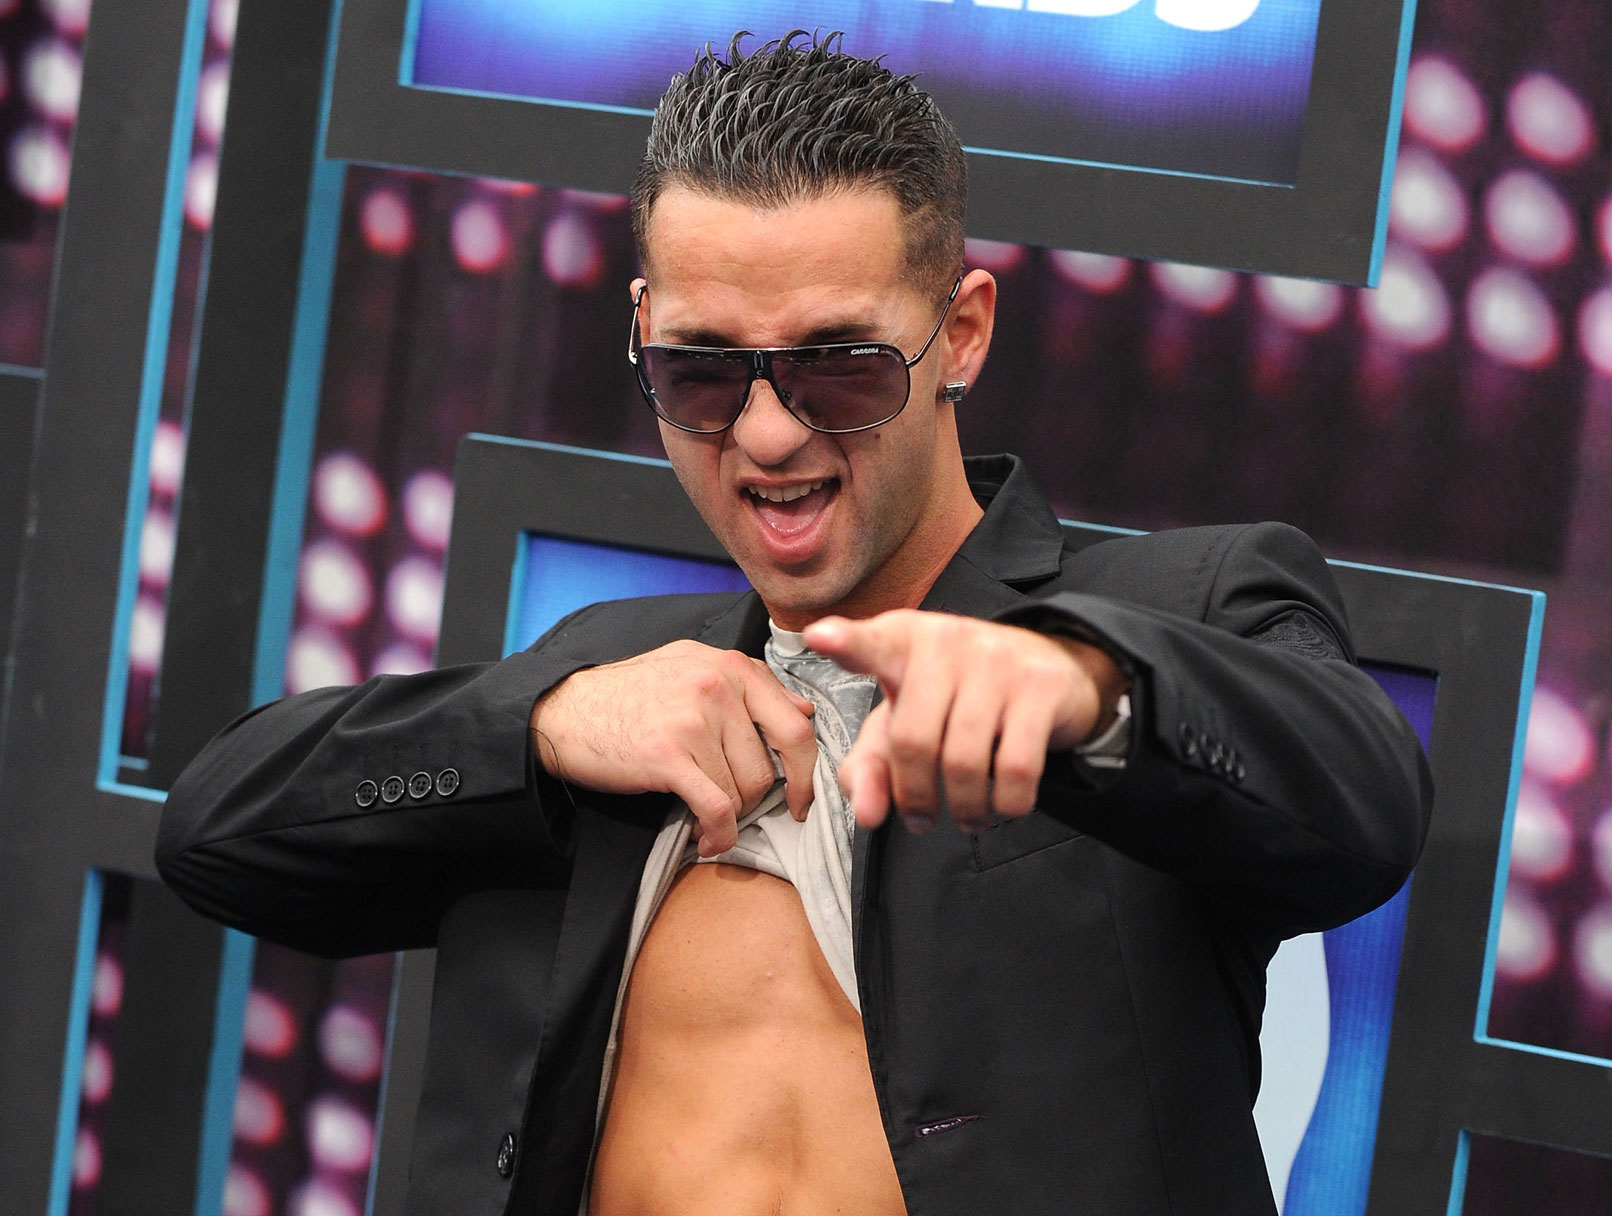 Jersey Shore's The Situation Wants to Dress You Up